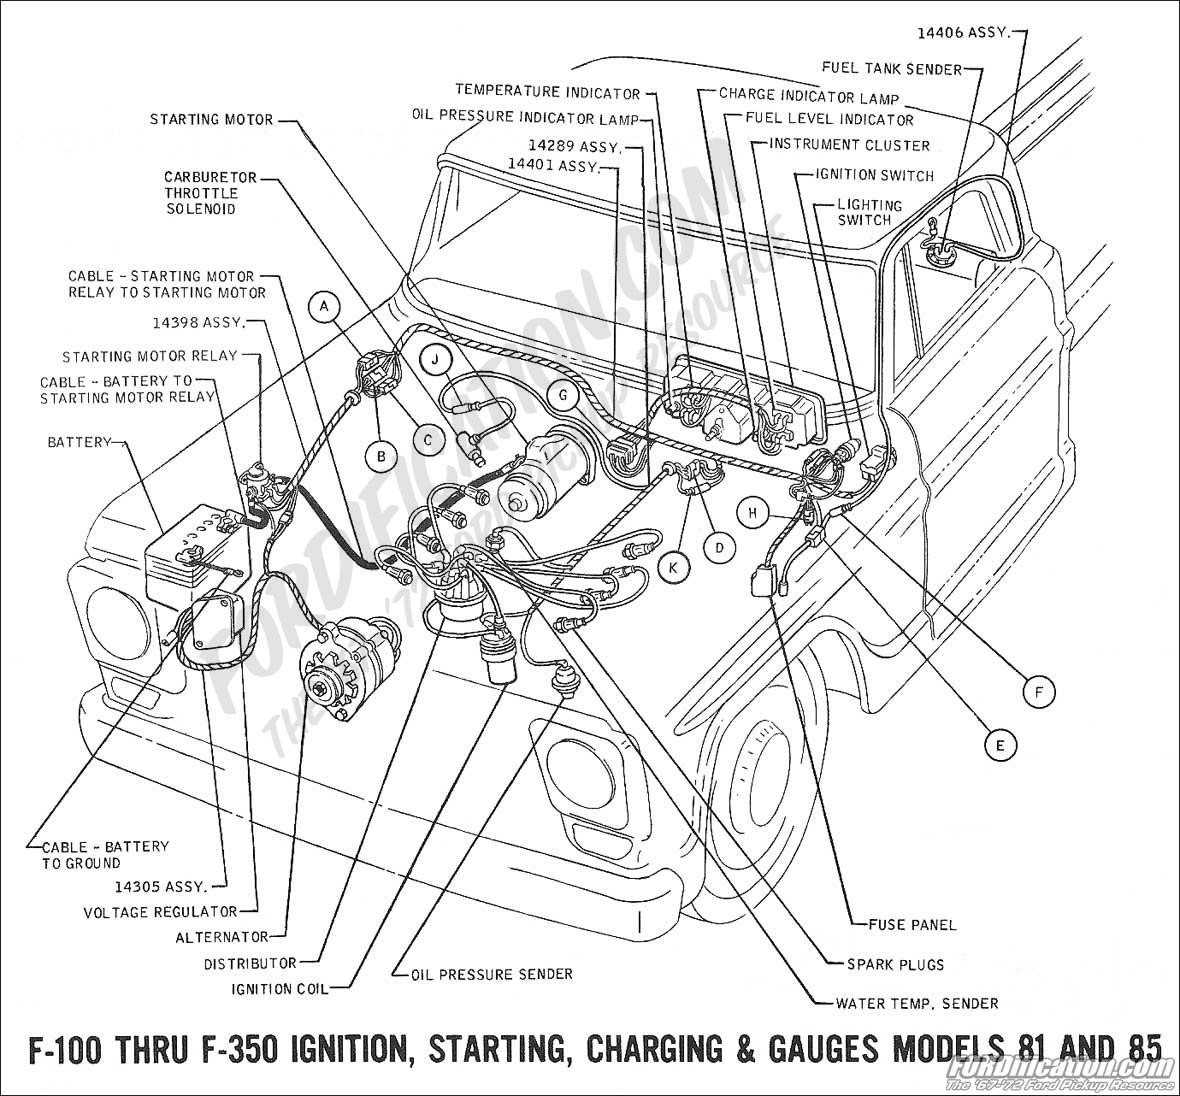 Schematics h furthermore Viewtopic likewise 1965 Ford F100 Wiring Diagram furthermore 78 Ford Ignition Switch Wiring Diagram additionally 94 Mustang Fuse Location. on 1960 ford starter solenoid diagram